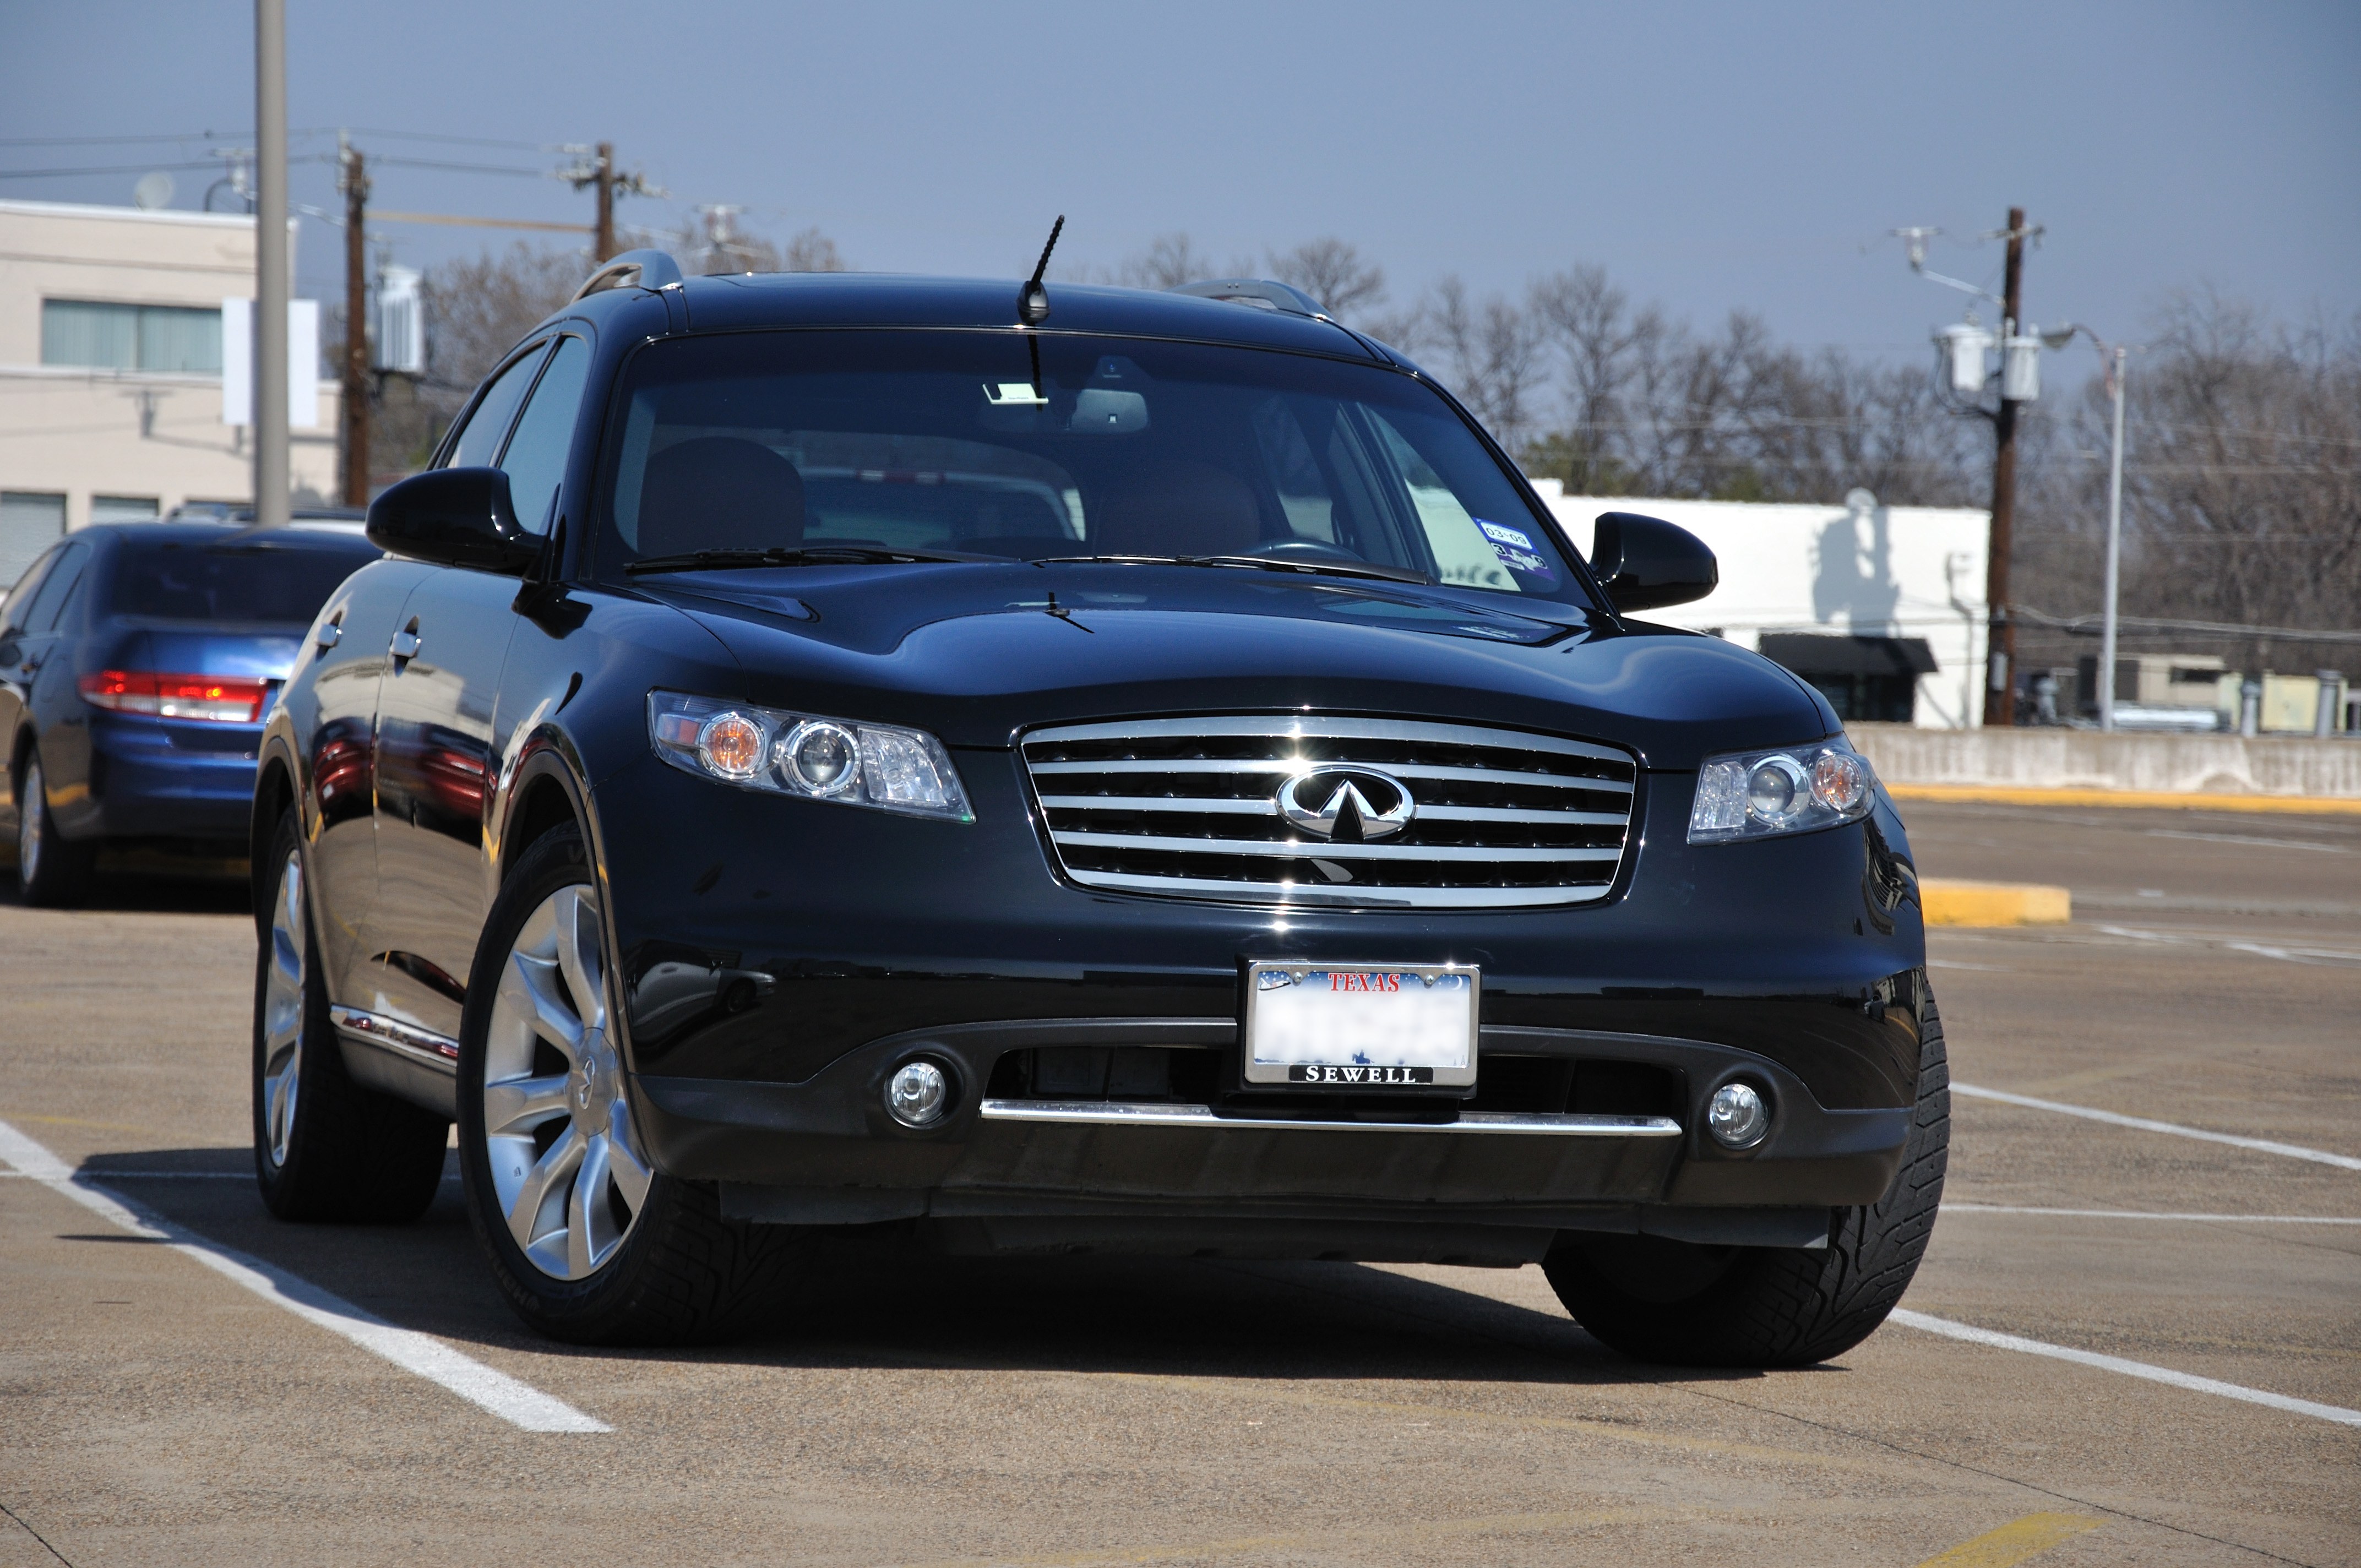 2007 infiniti fx45 information and photos zombiedrive 2007 infiniti fx45 20 infiniti fx45 20 vanachro Choice Image